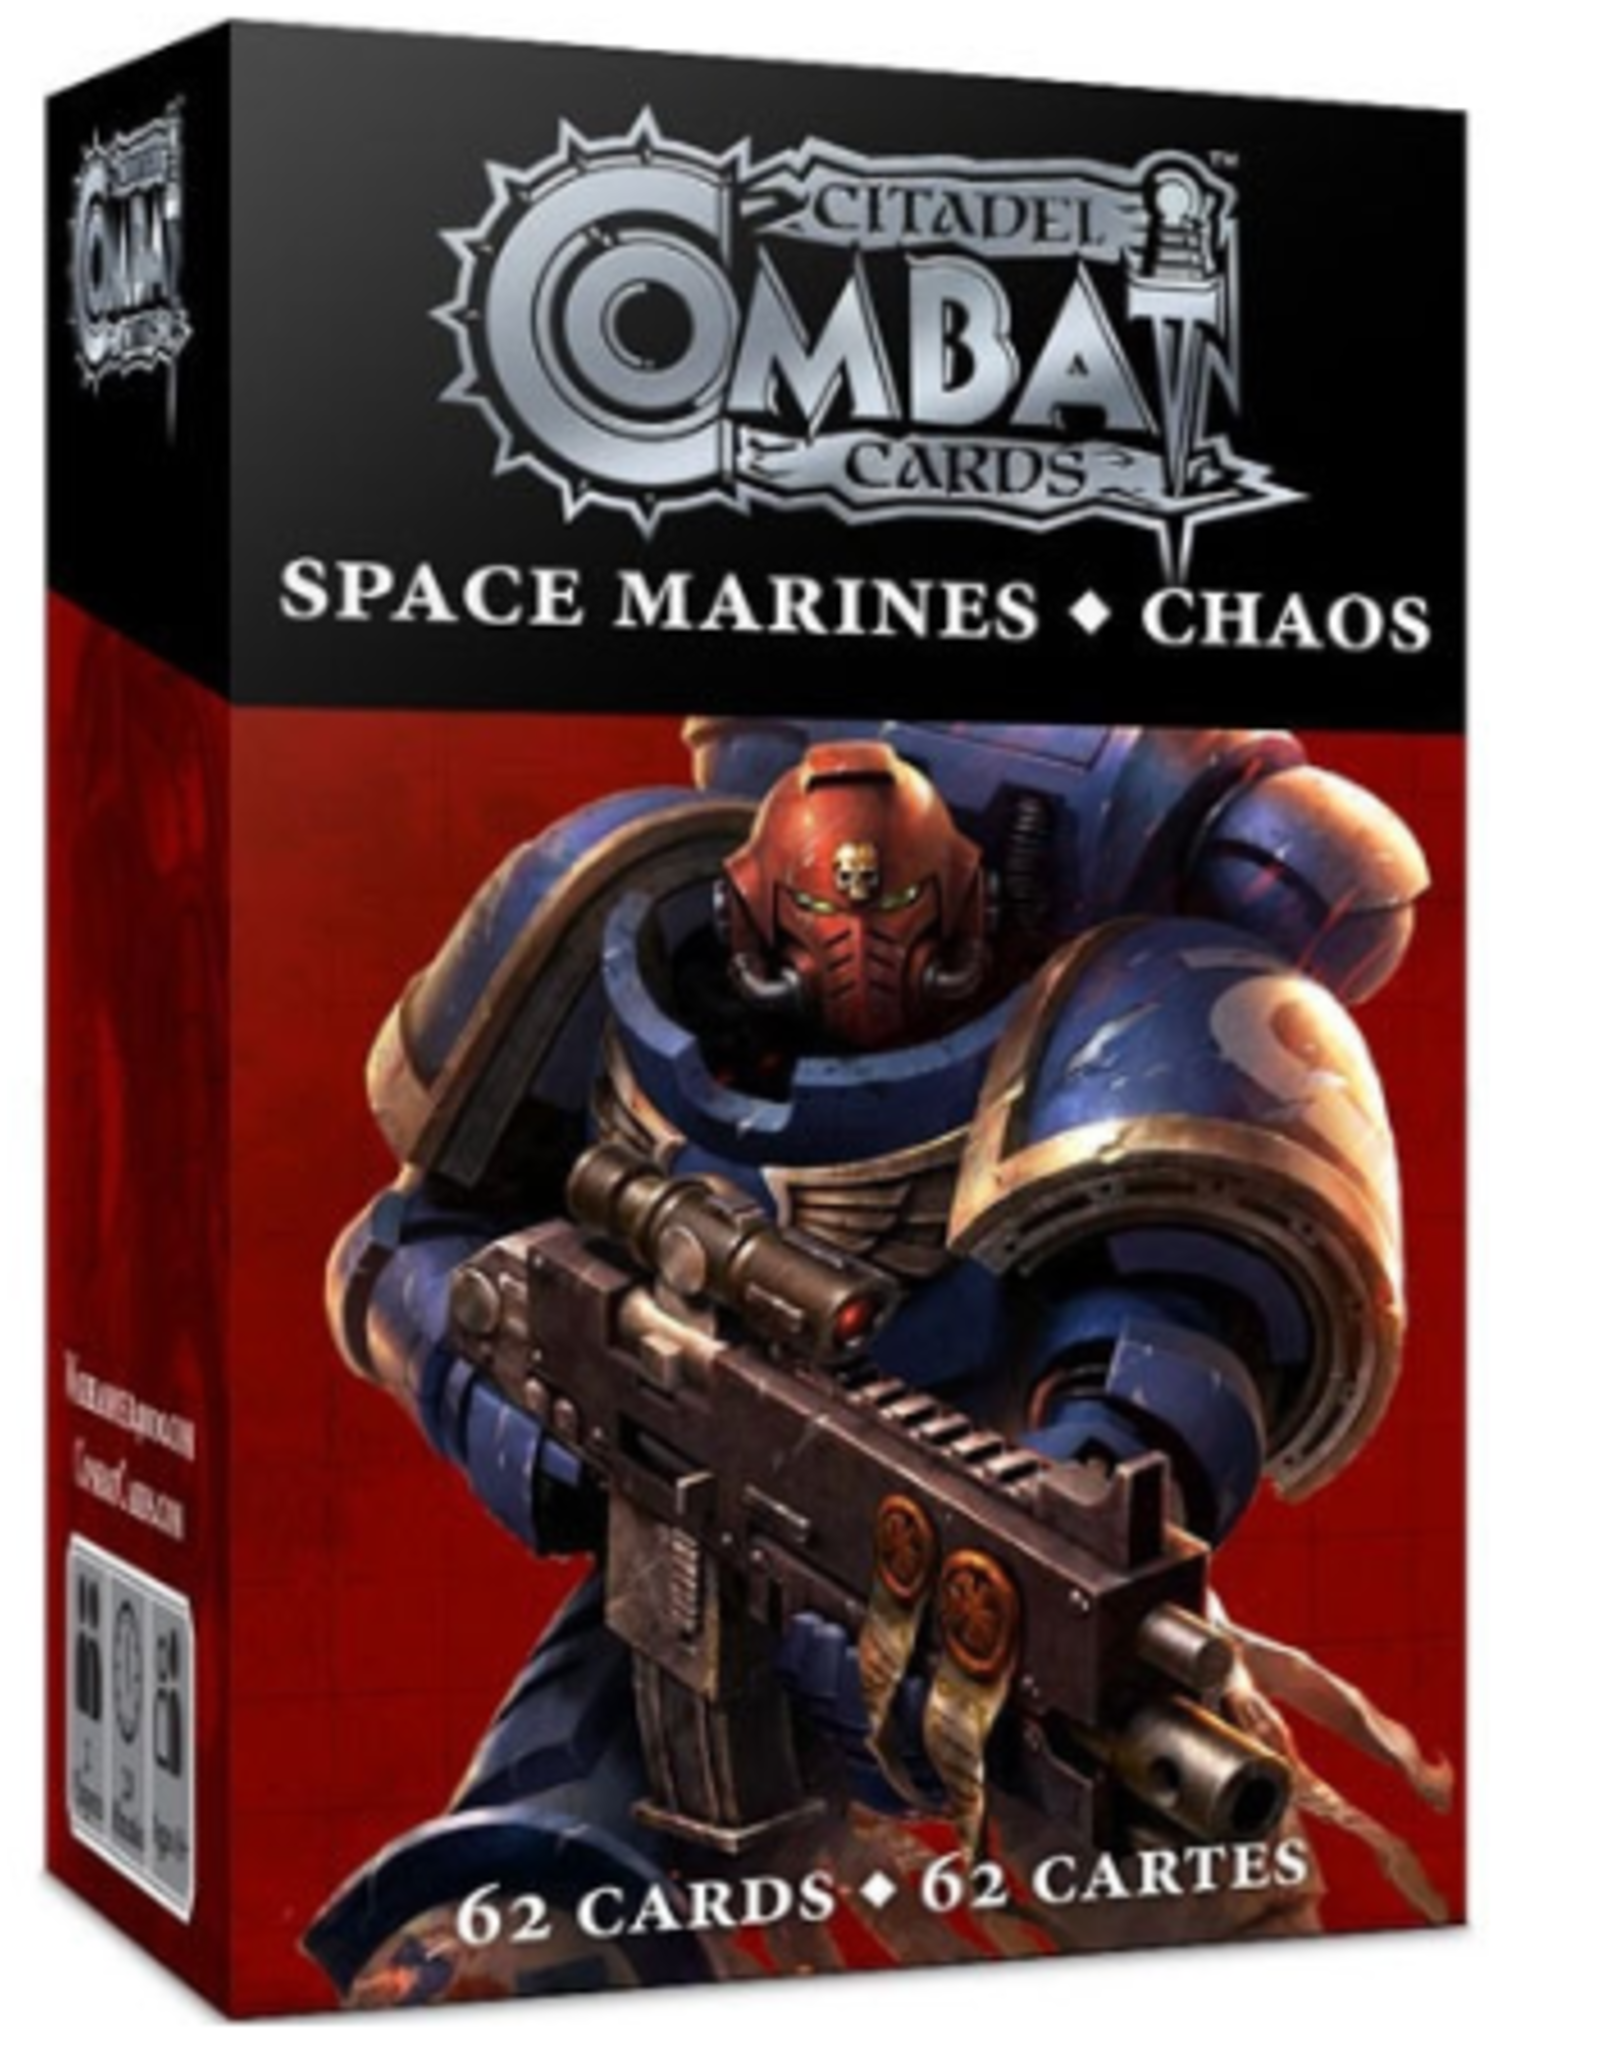 Games Workshop Citadel Combat Cards: Space Marines & Chaos